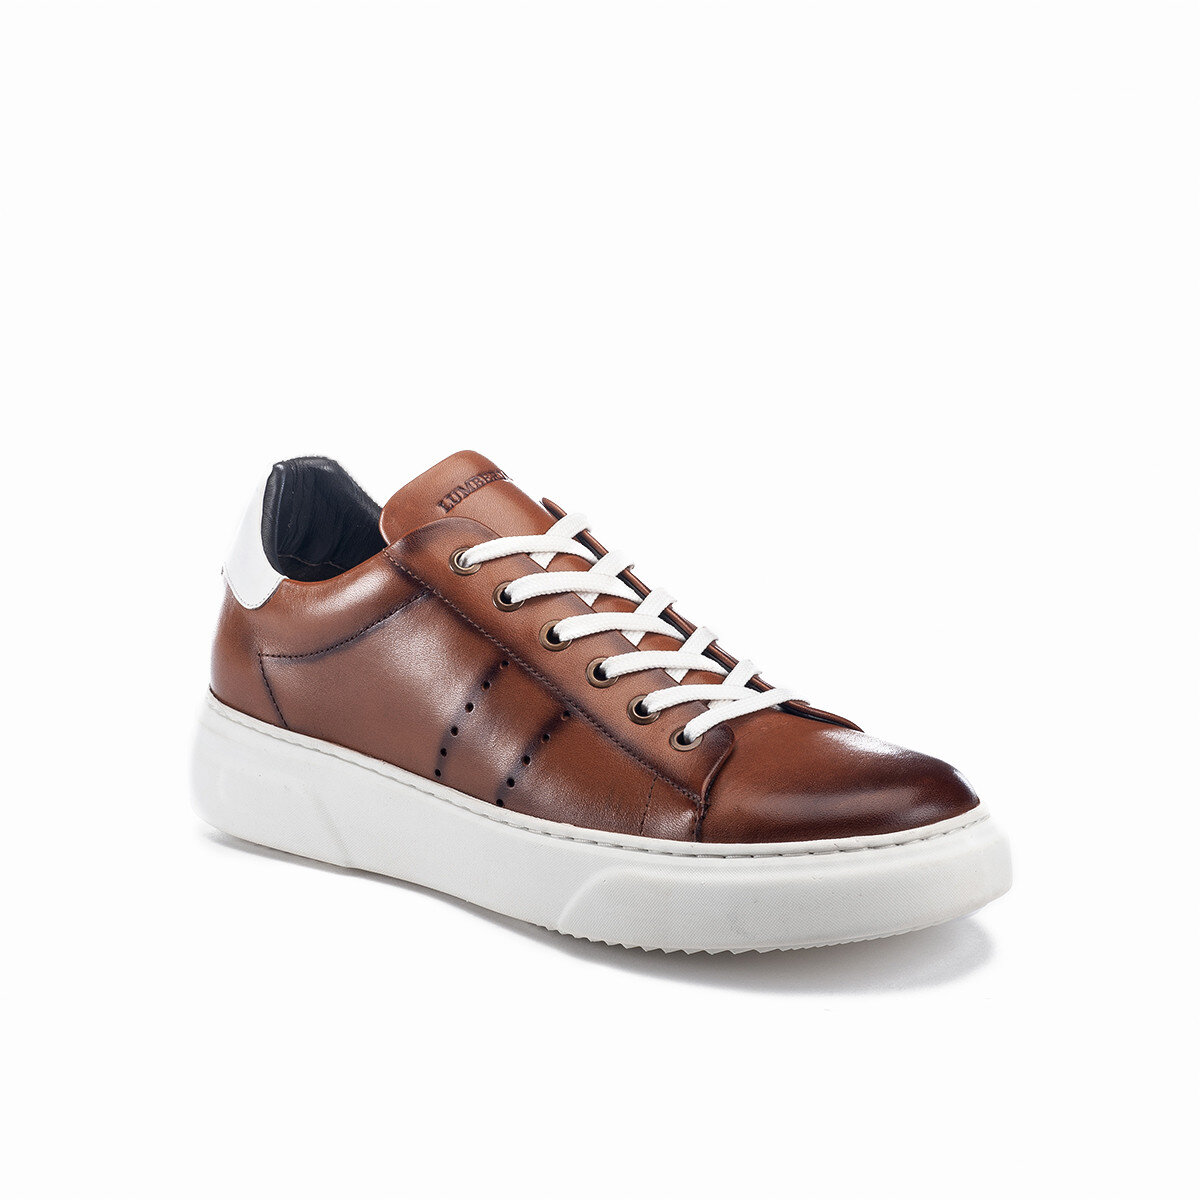 JOHNSON Sneakers Uomo